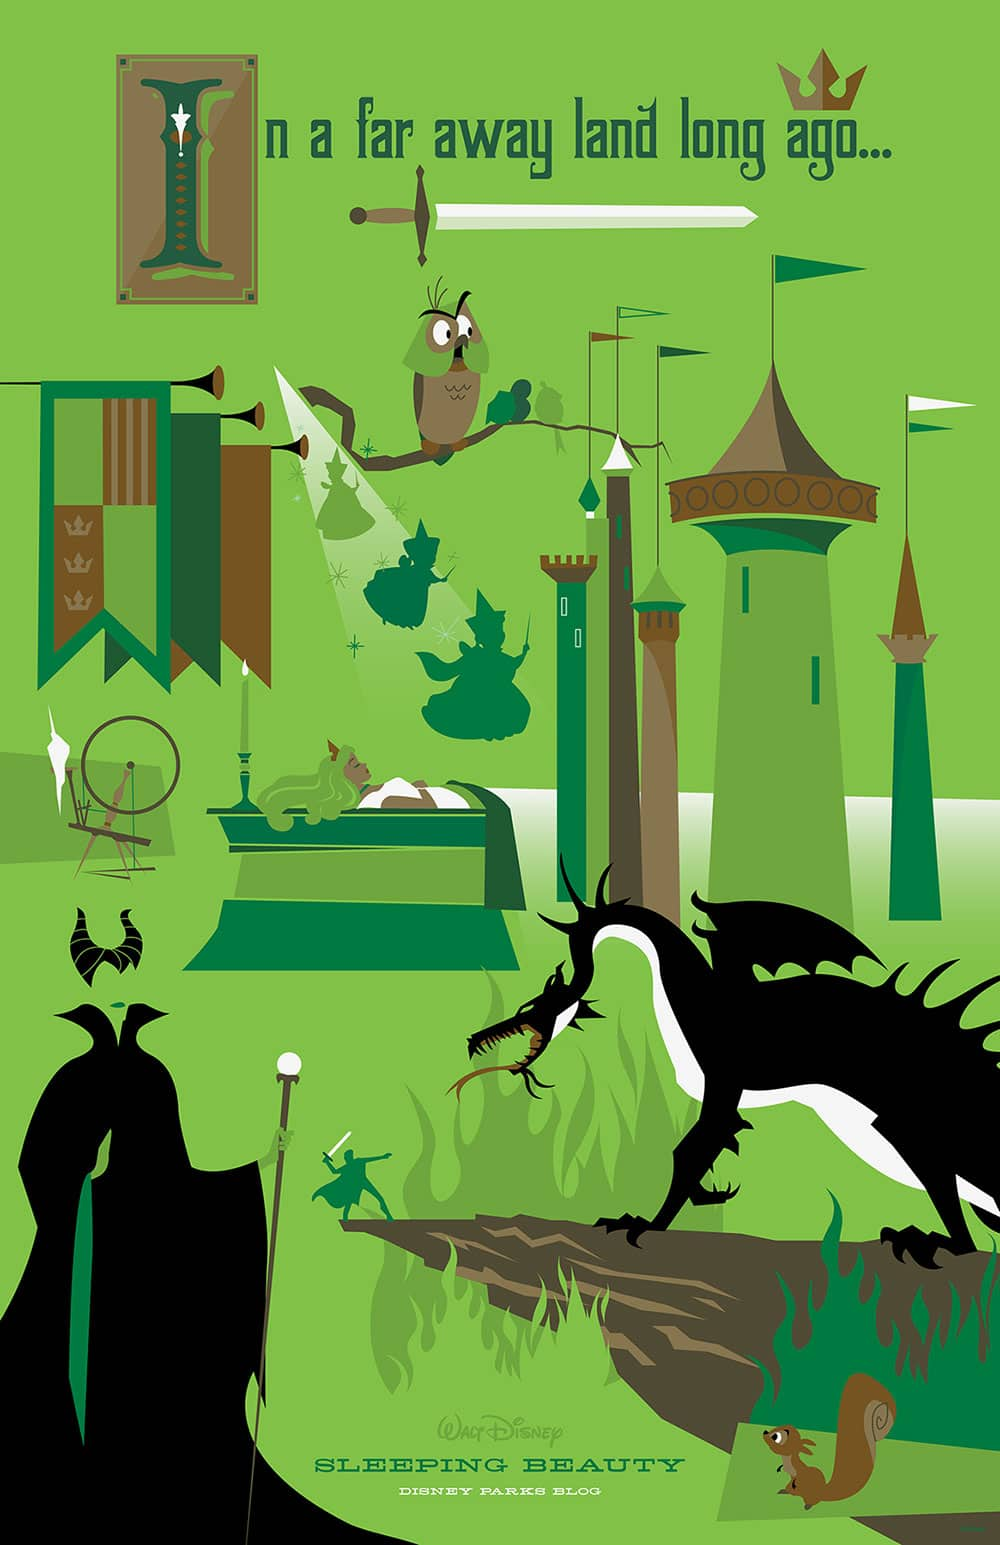 Download Our Maleficent Inspired Disney Parks Blog Wallpaper Disney Parks Blog